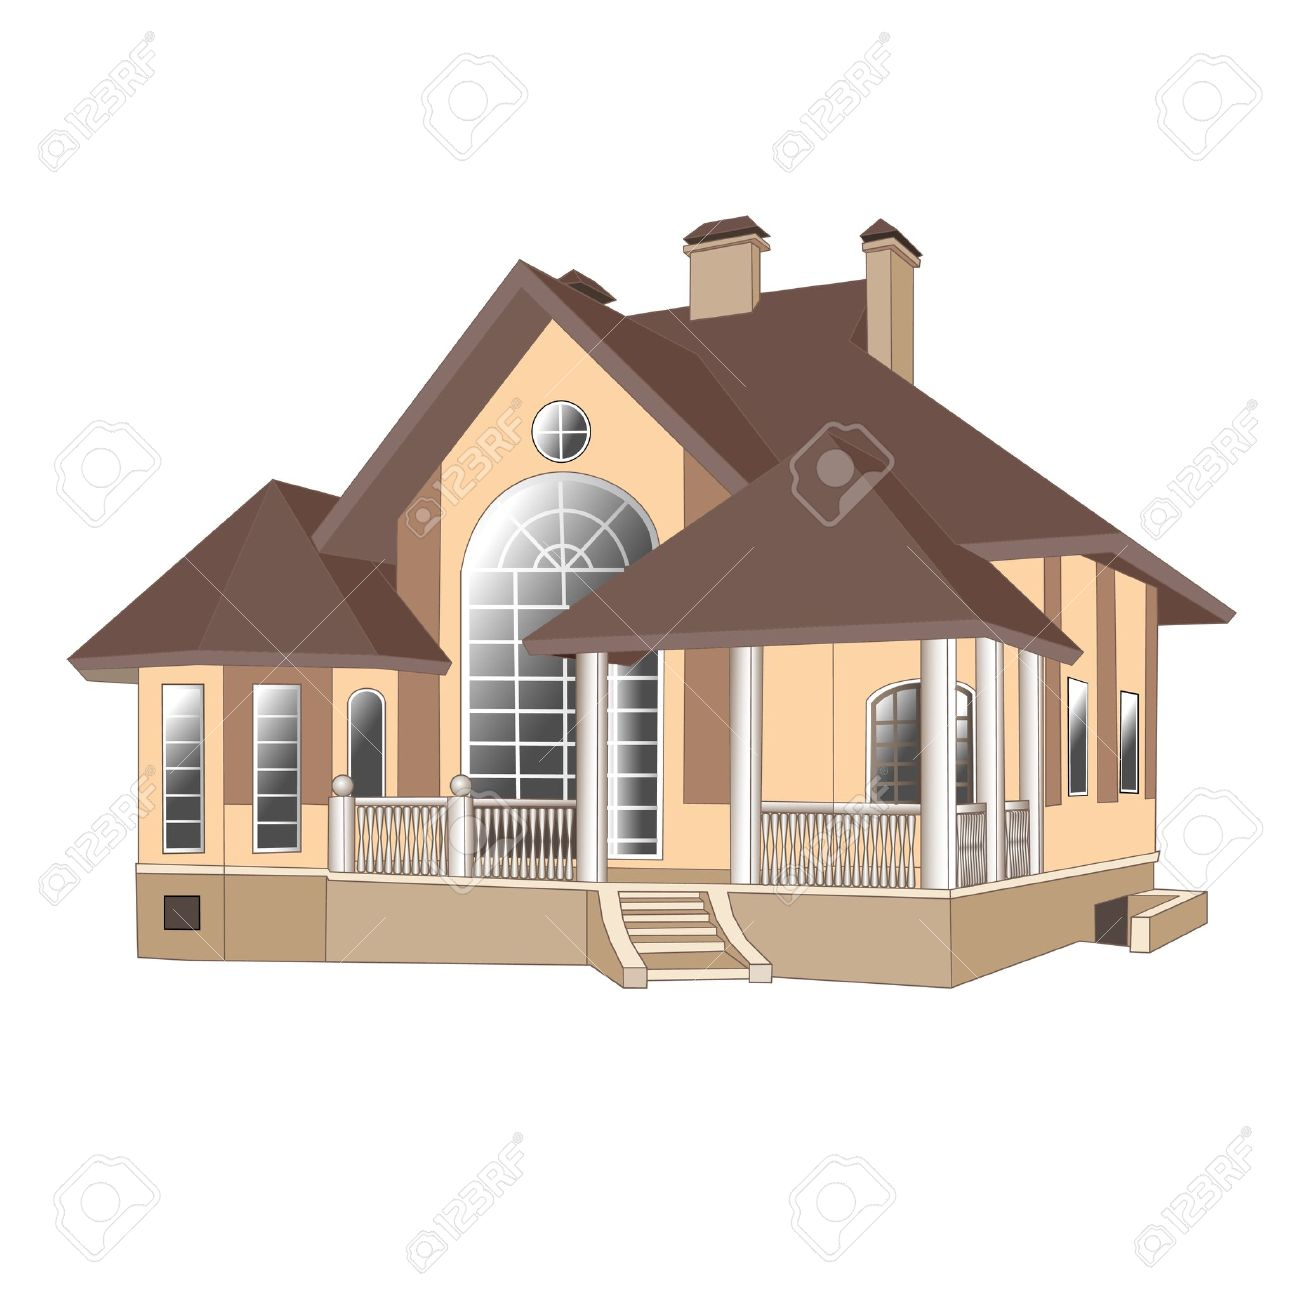 illustrations buildings vector cottage painting house